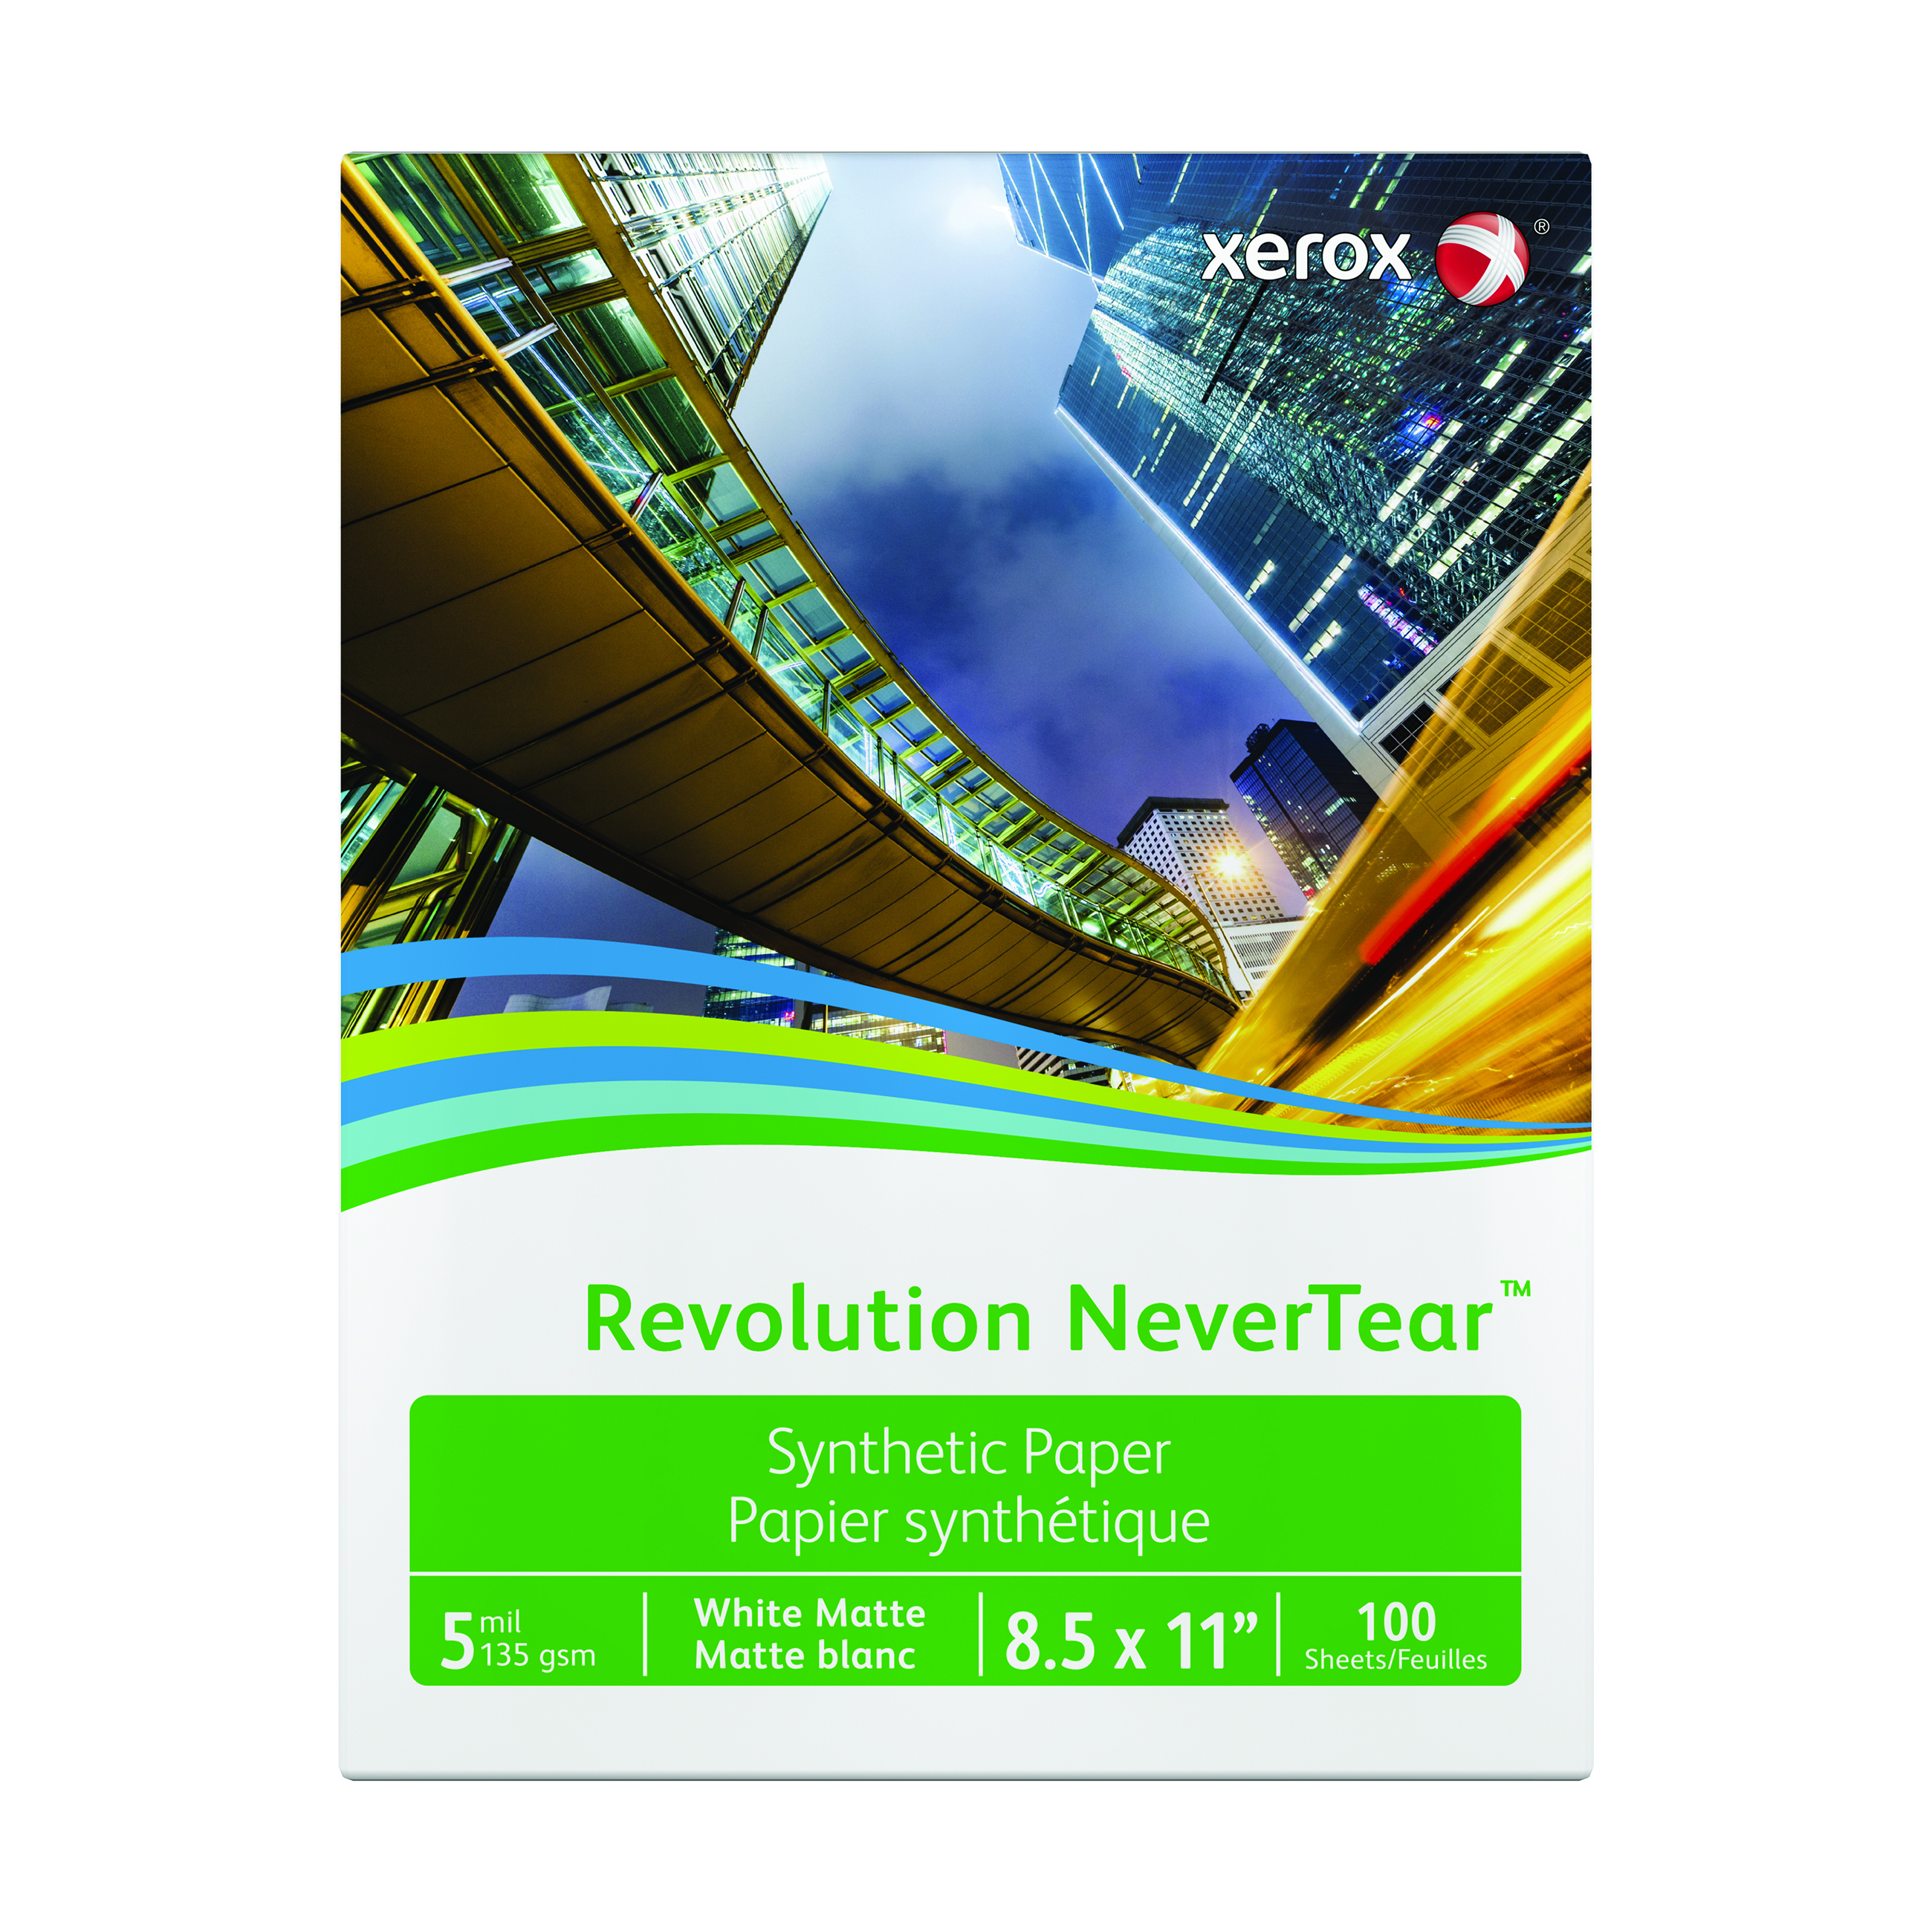 Xerox Revolution Product Shot